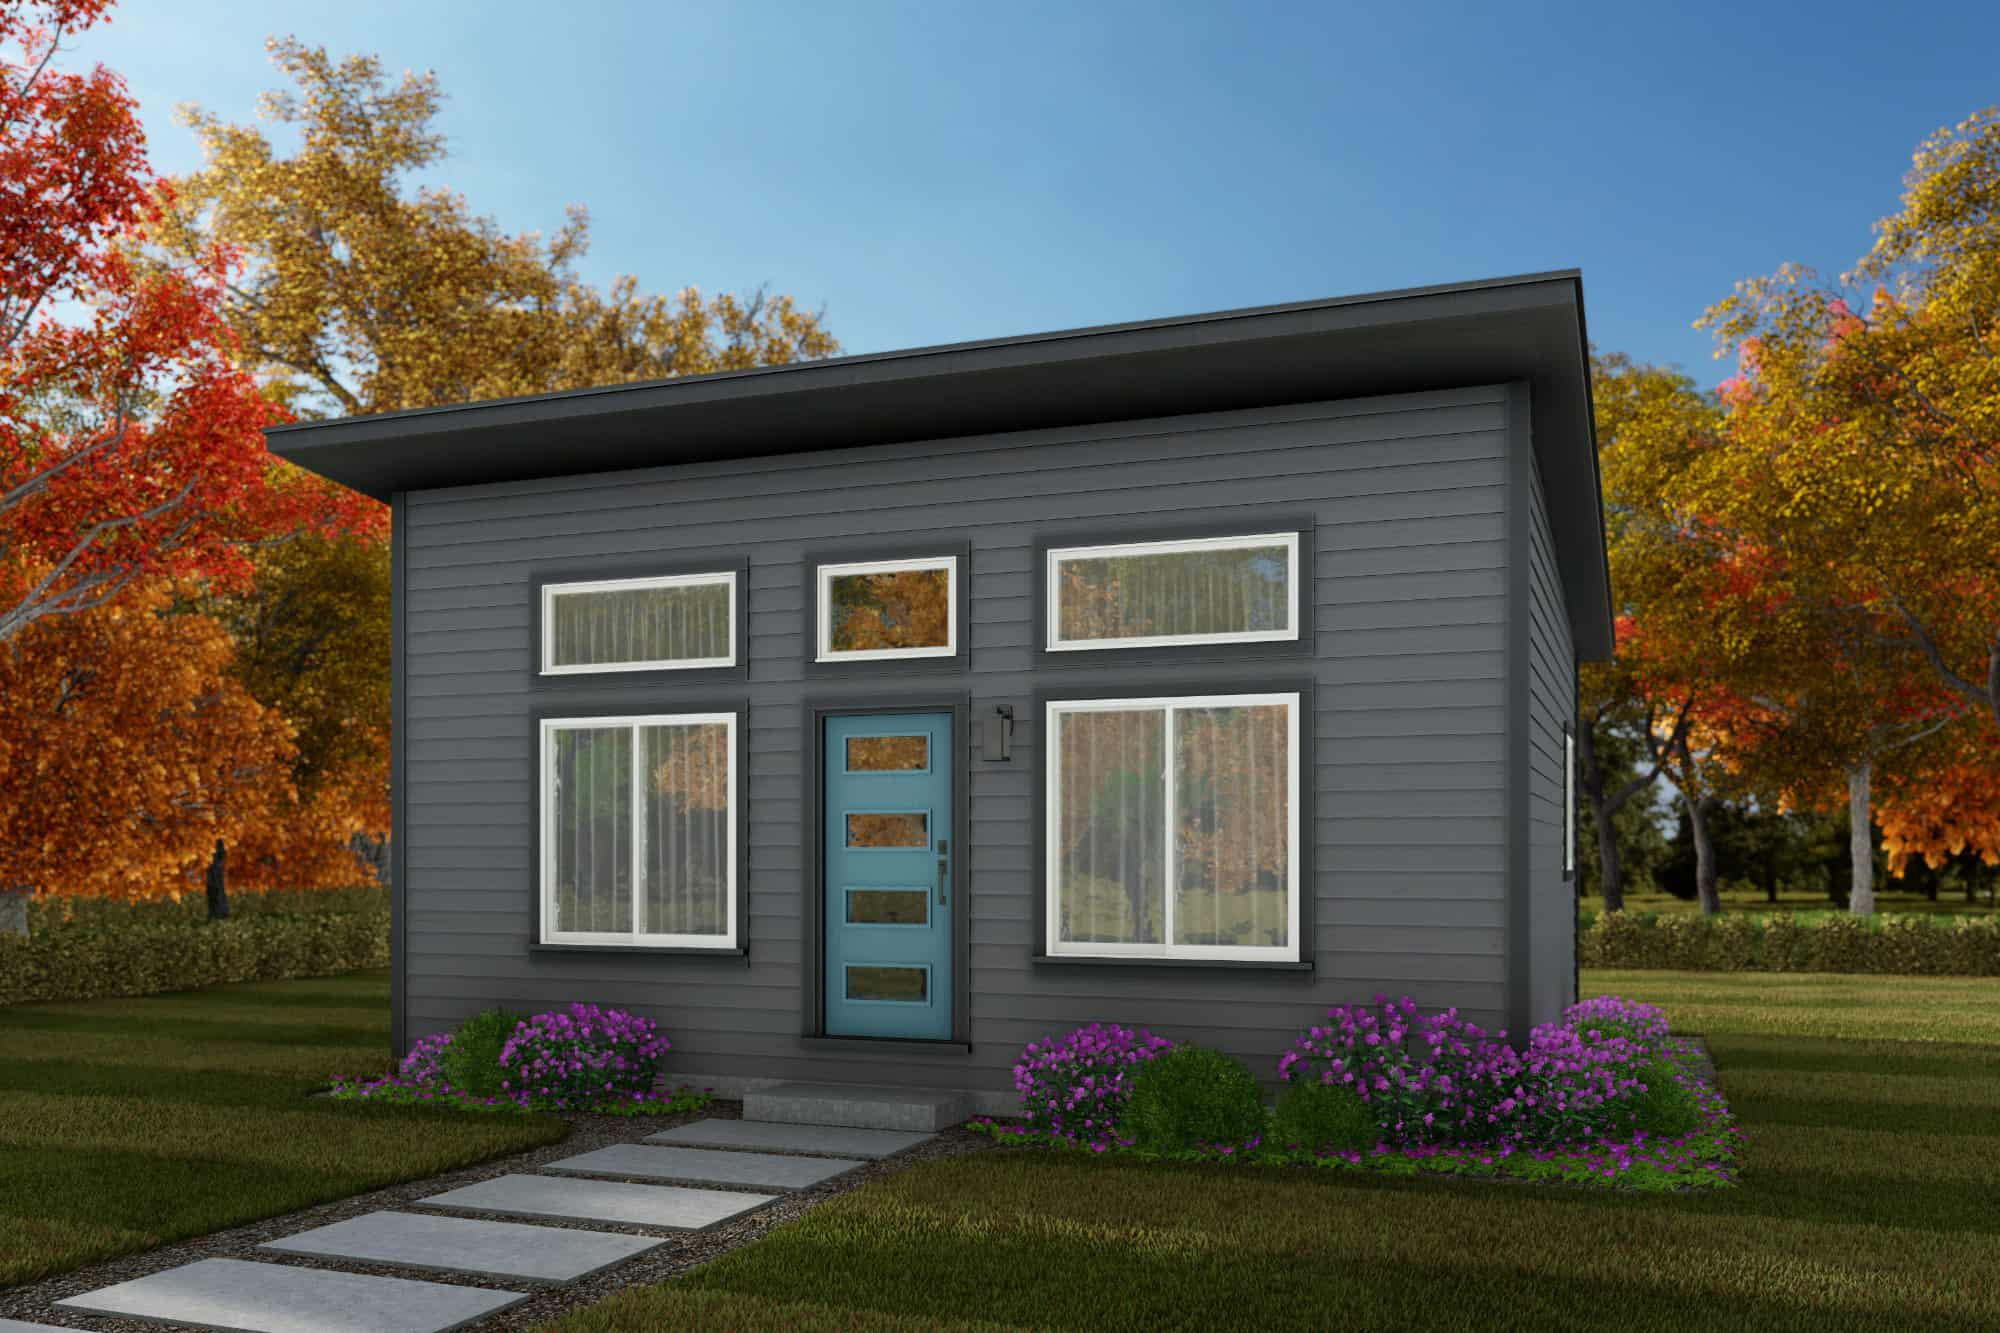 Centralia Home Plan - ADU 500